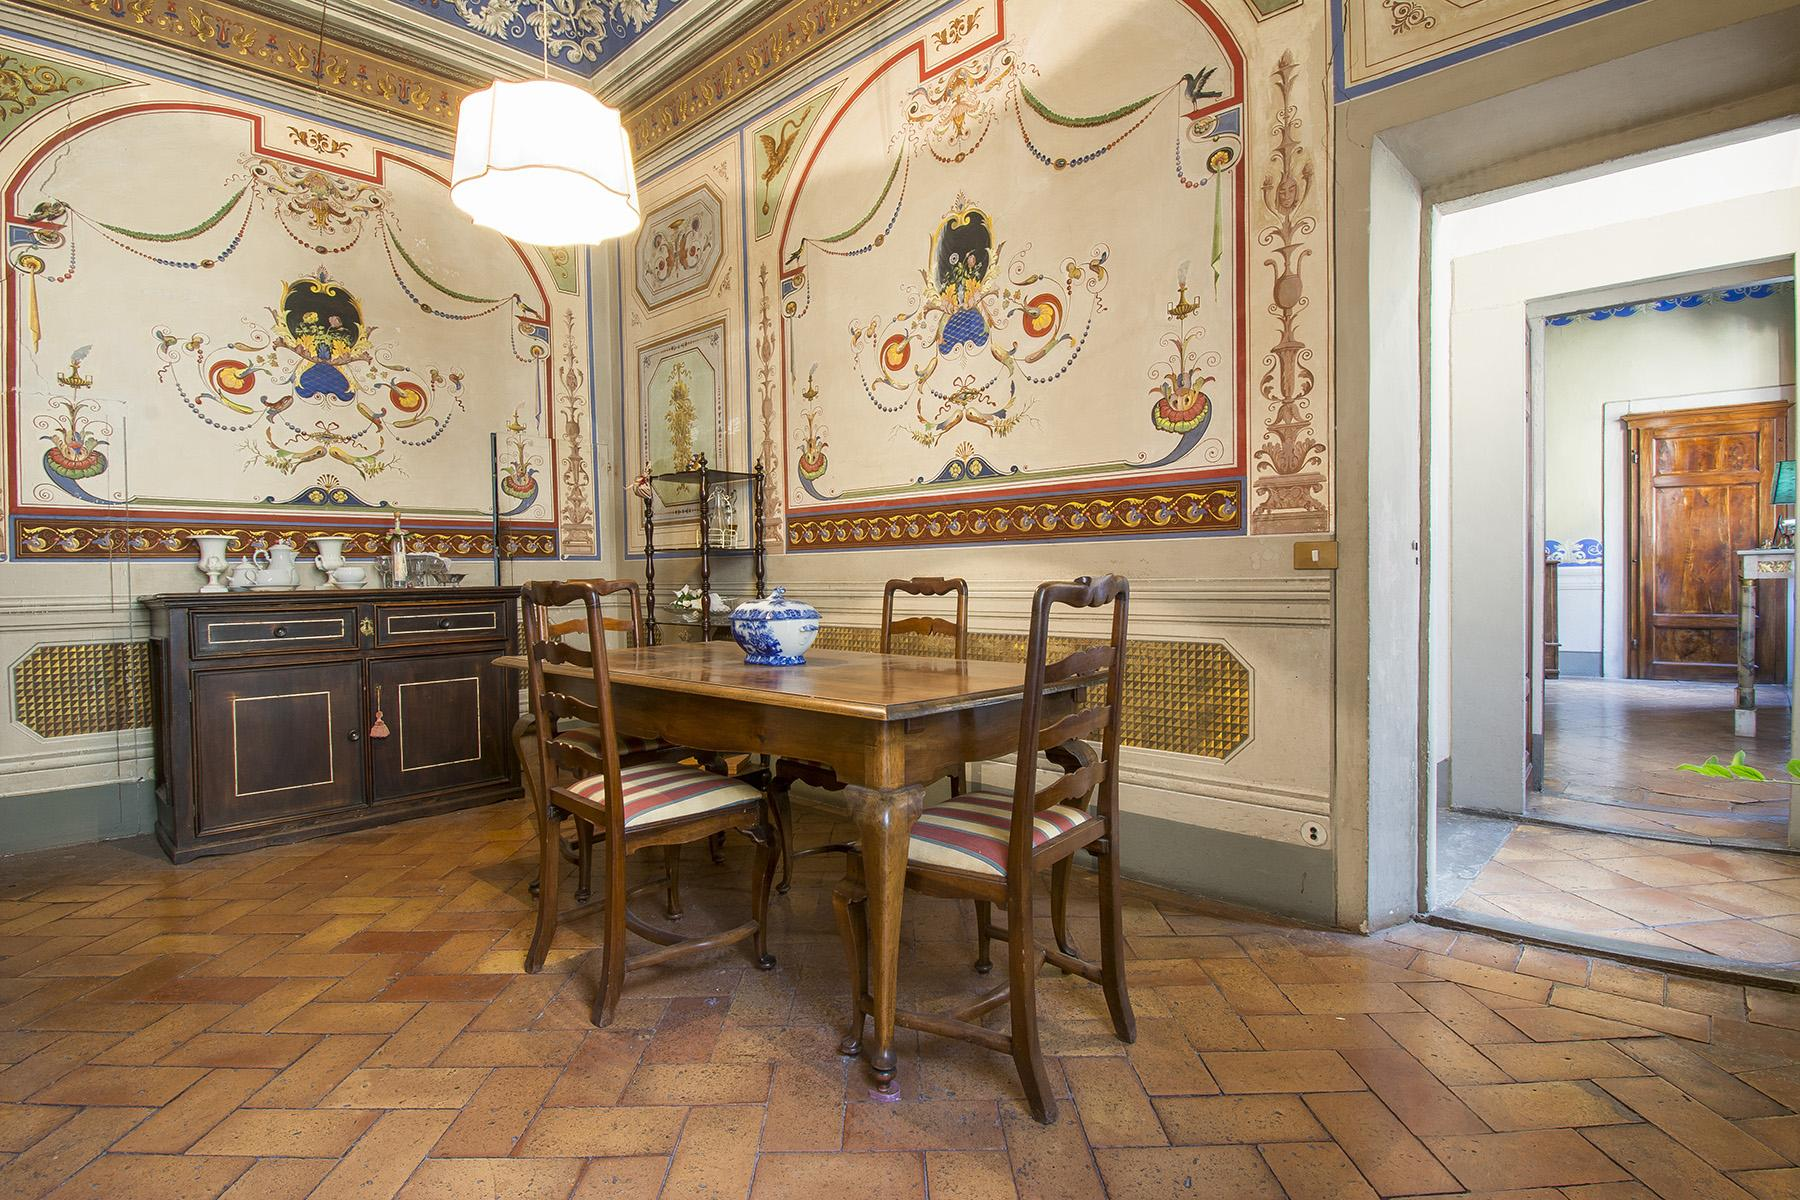 17th-century noble palace in the heart of Volterra - 9